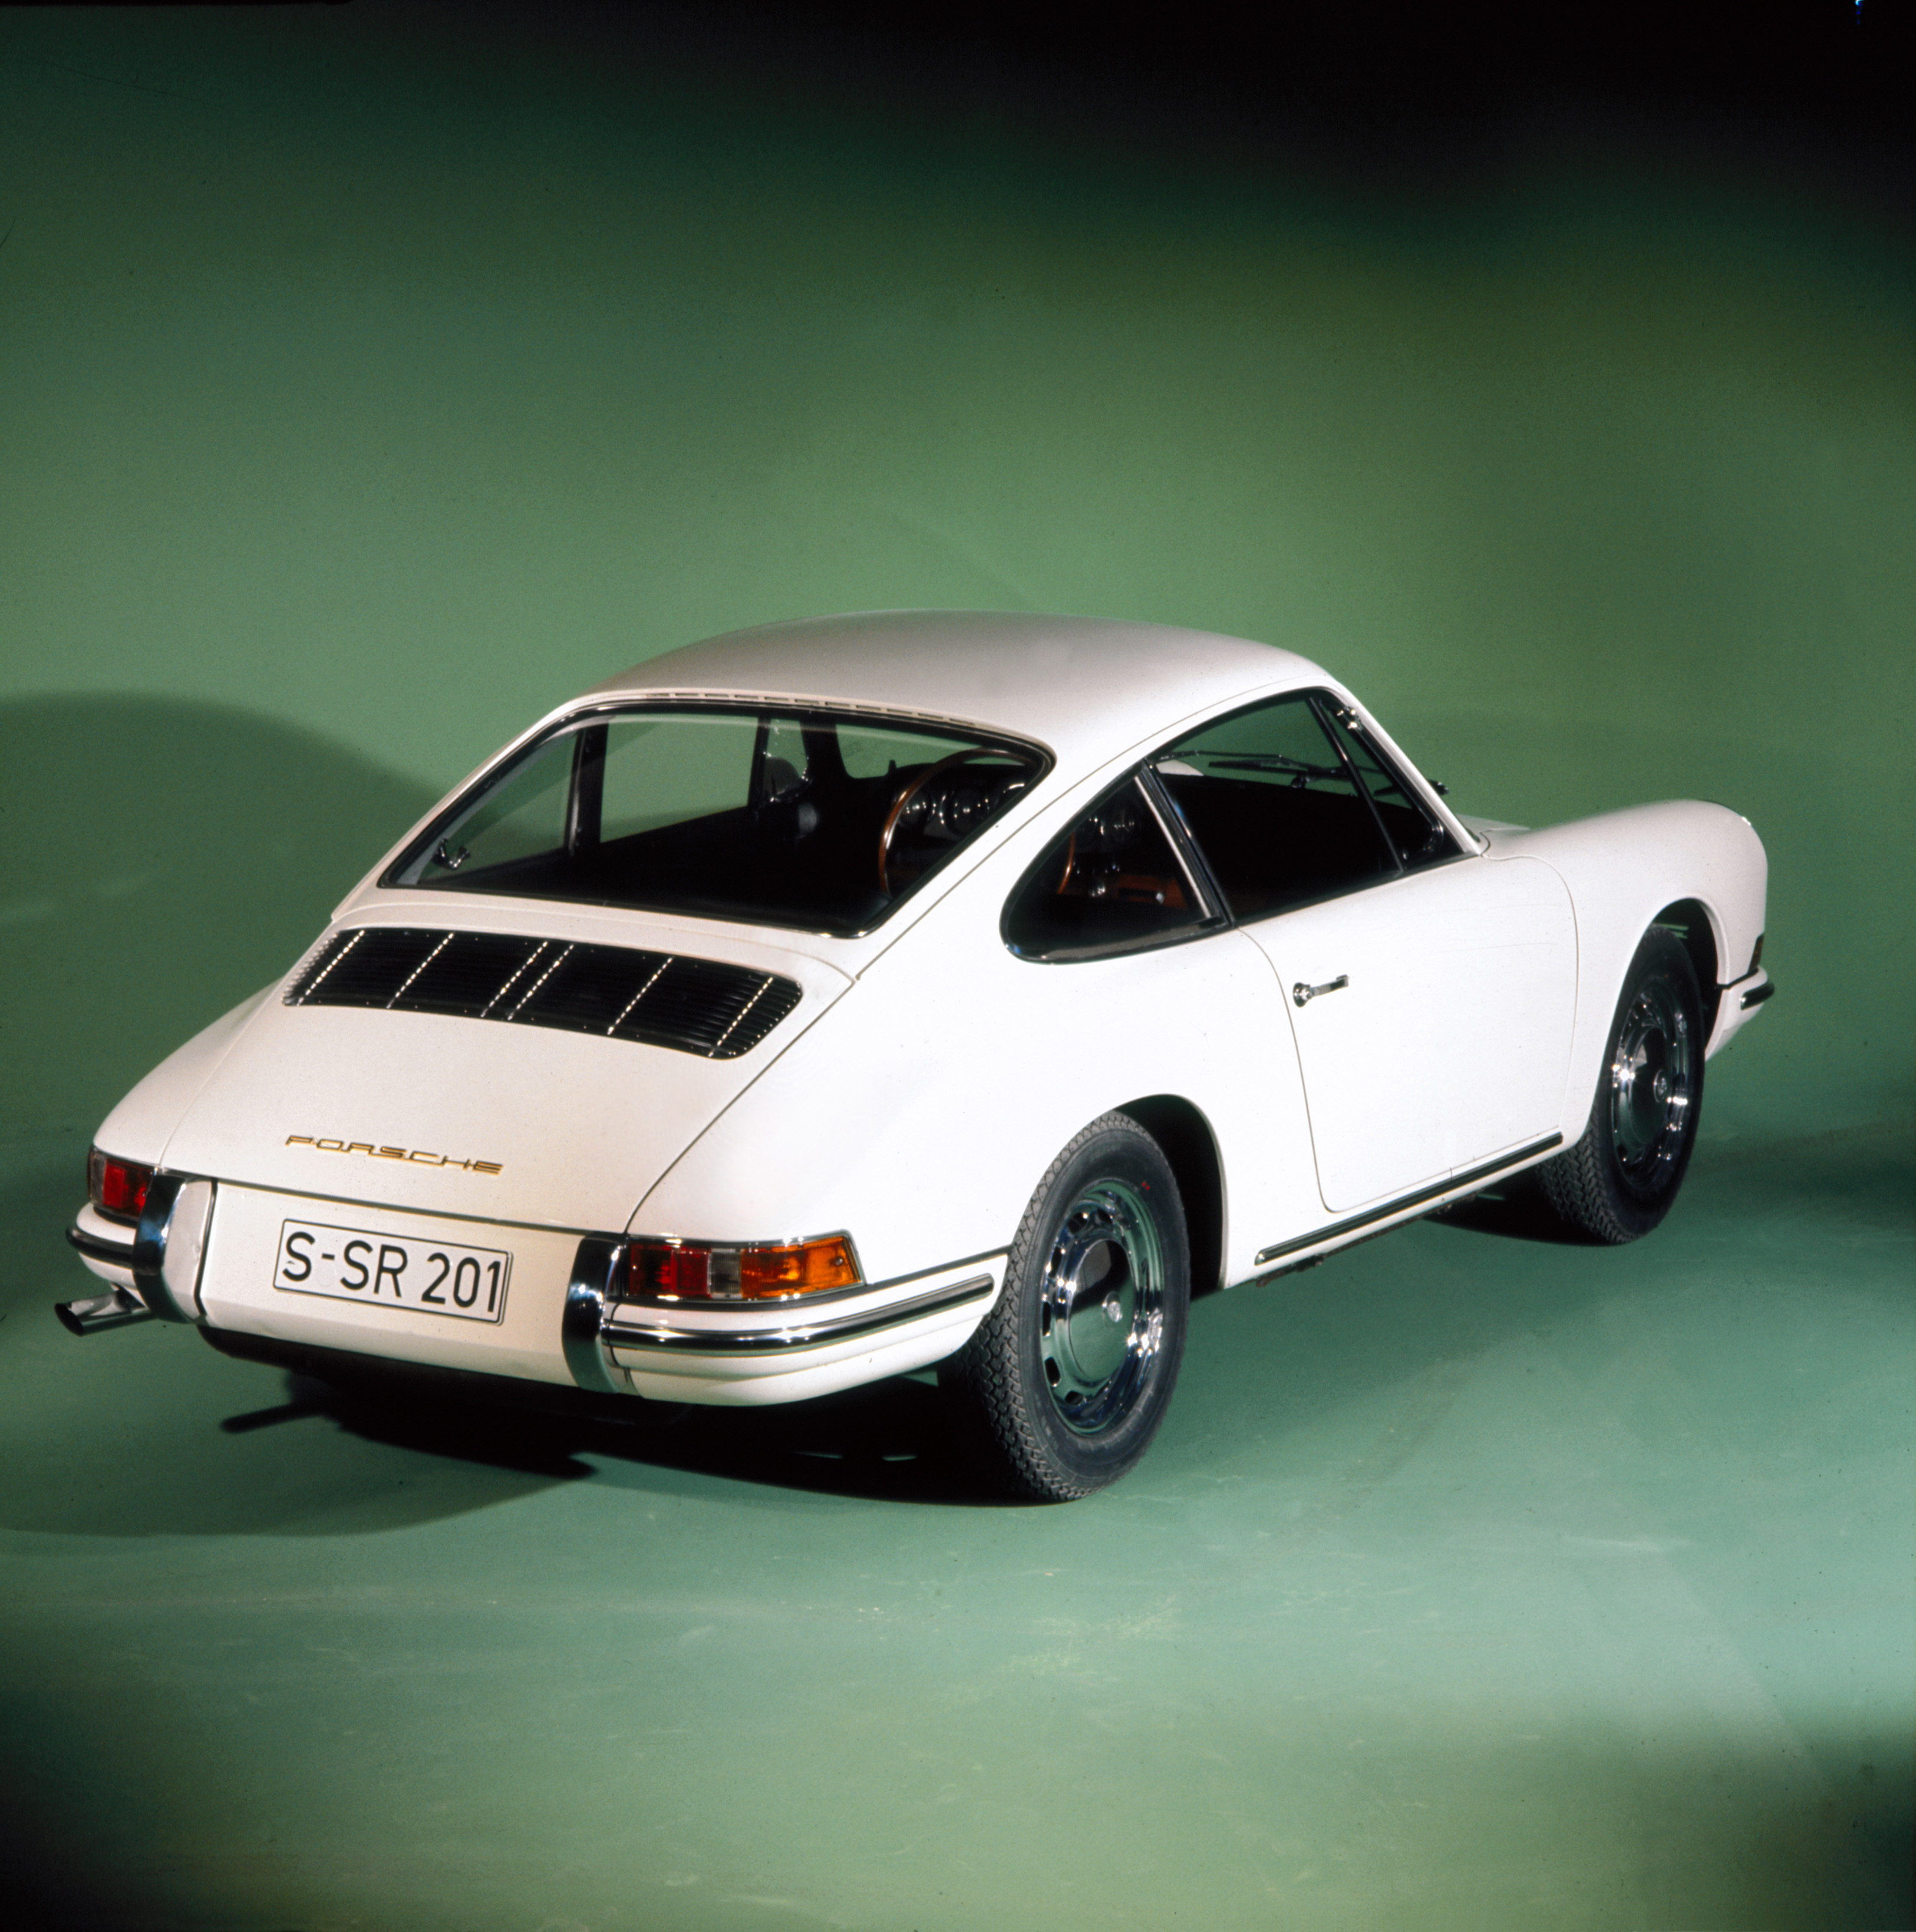 Porsche 911 Car: Production Anniversary Of The